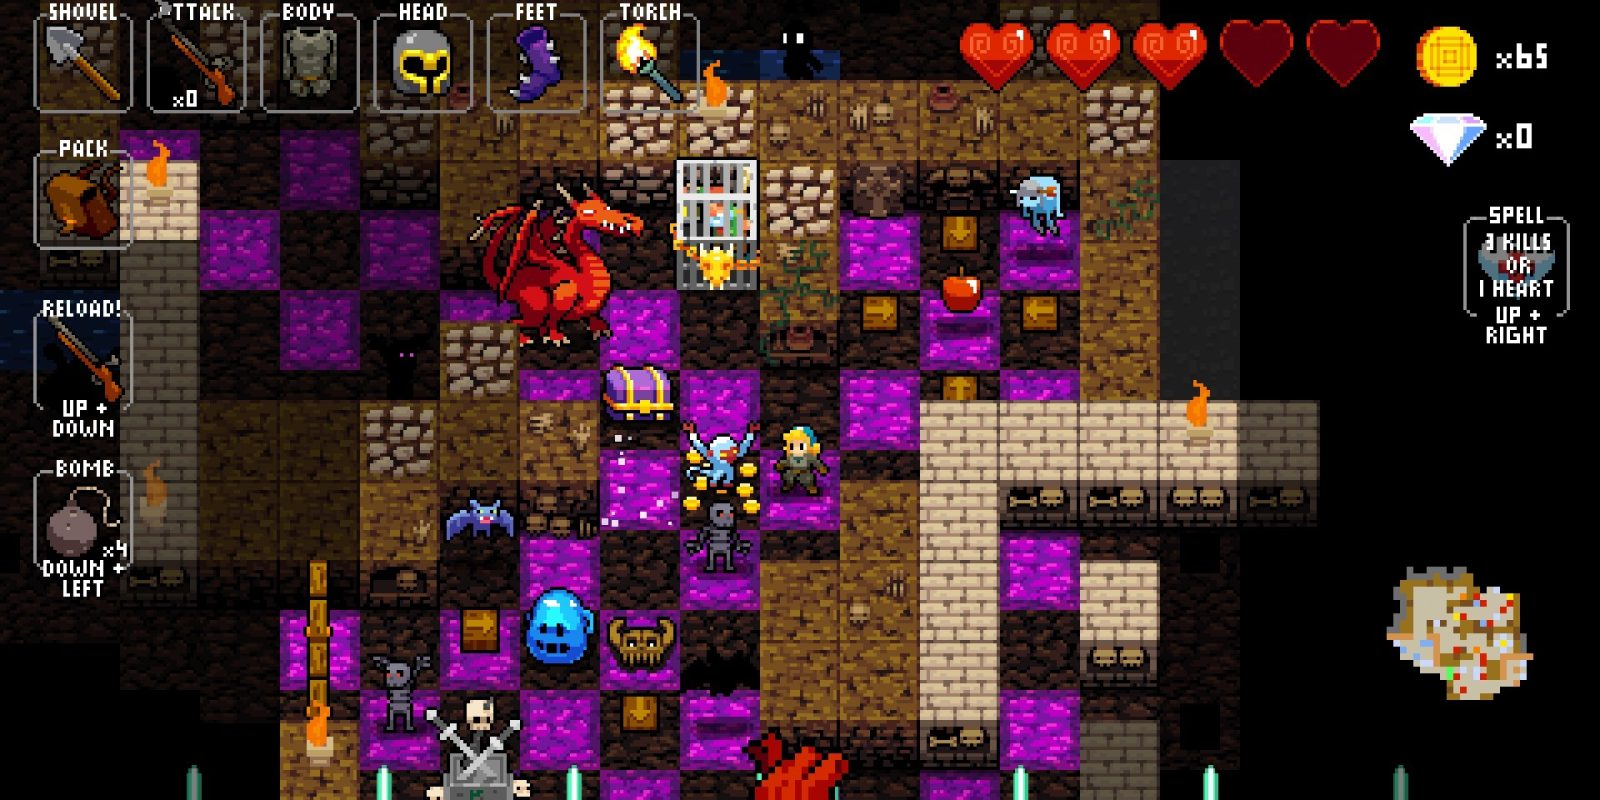 Roguelike iOS rhythm game Crypt of the NecroDancer hits the all-time low at $1